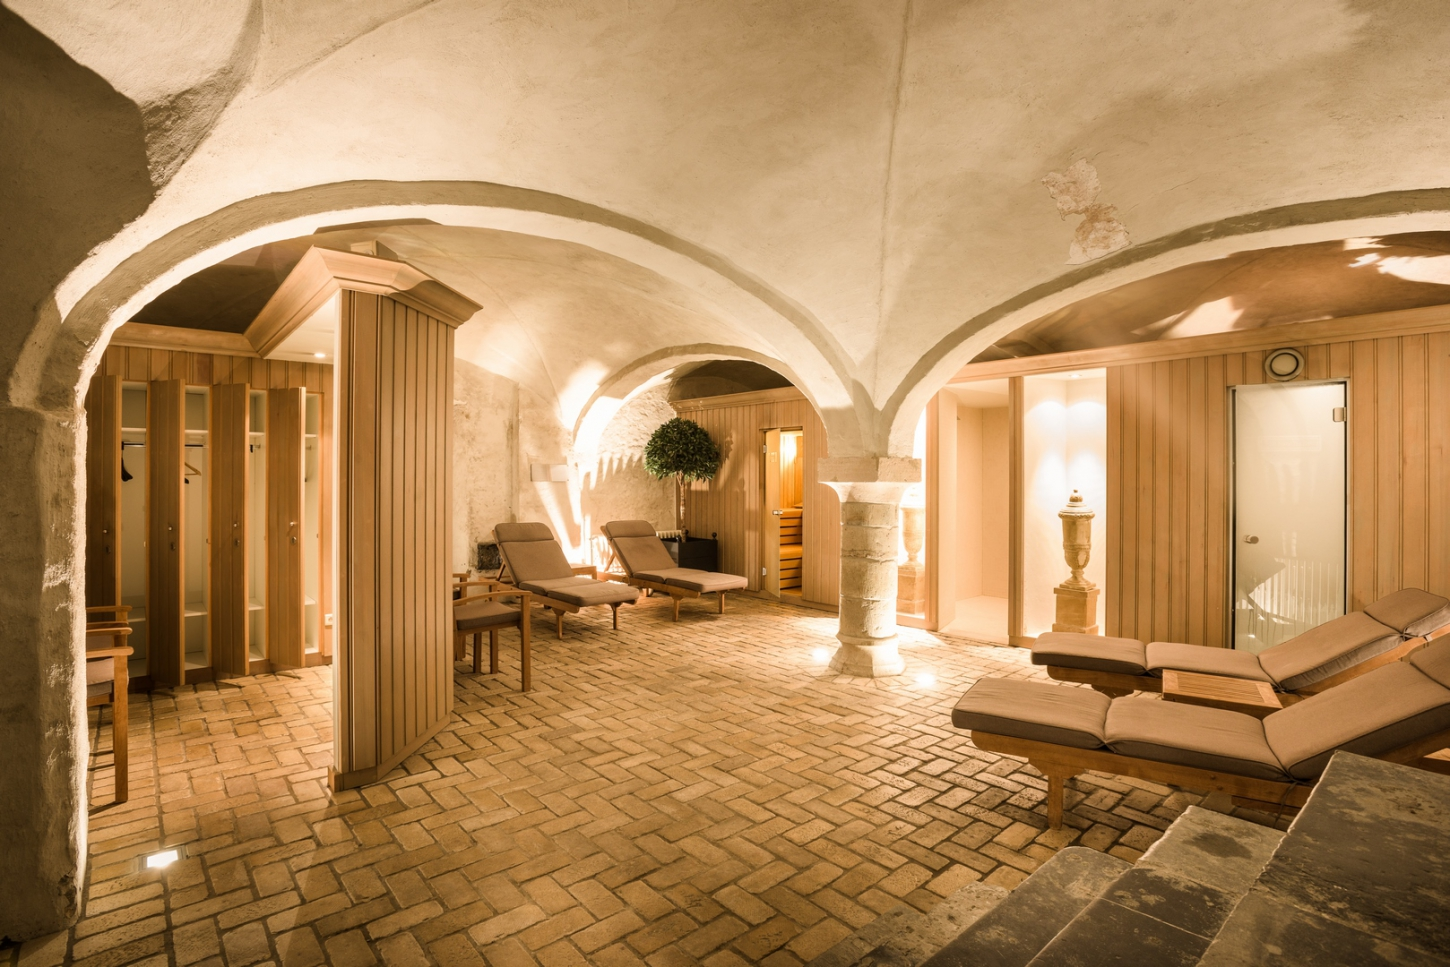 Hotel with wellness: bathing in luxury